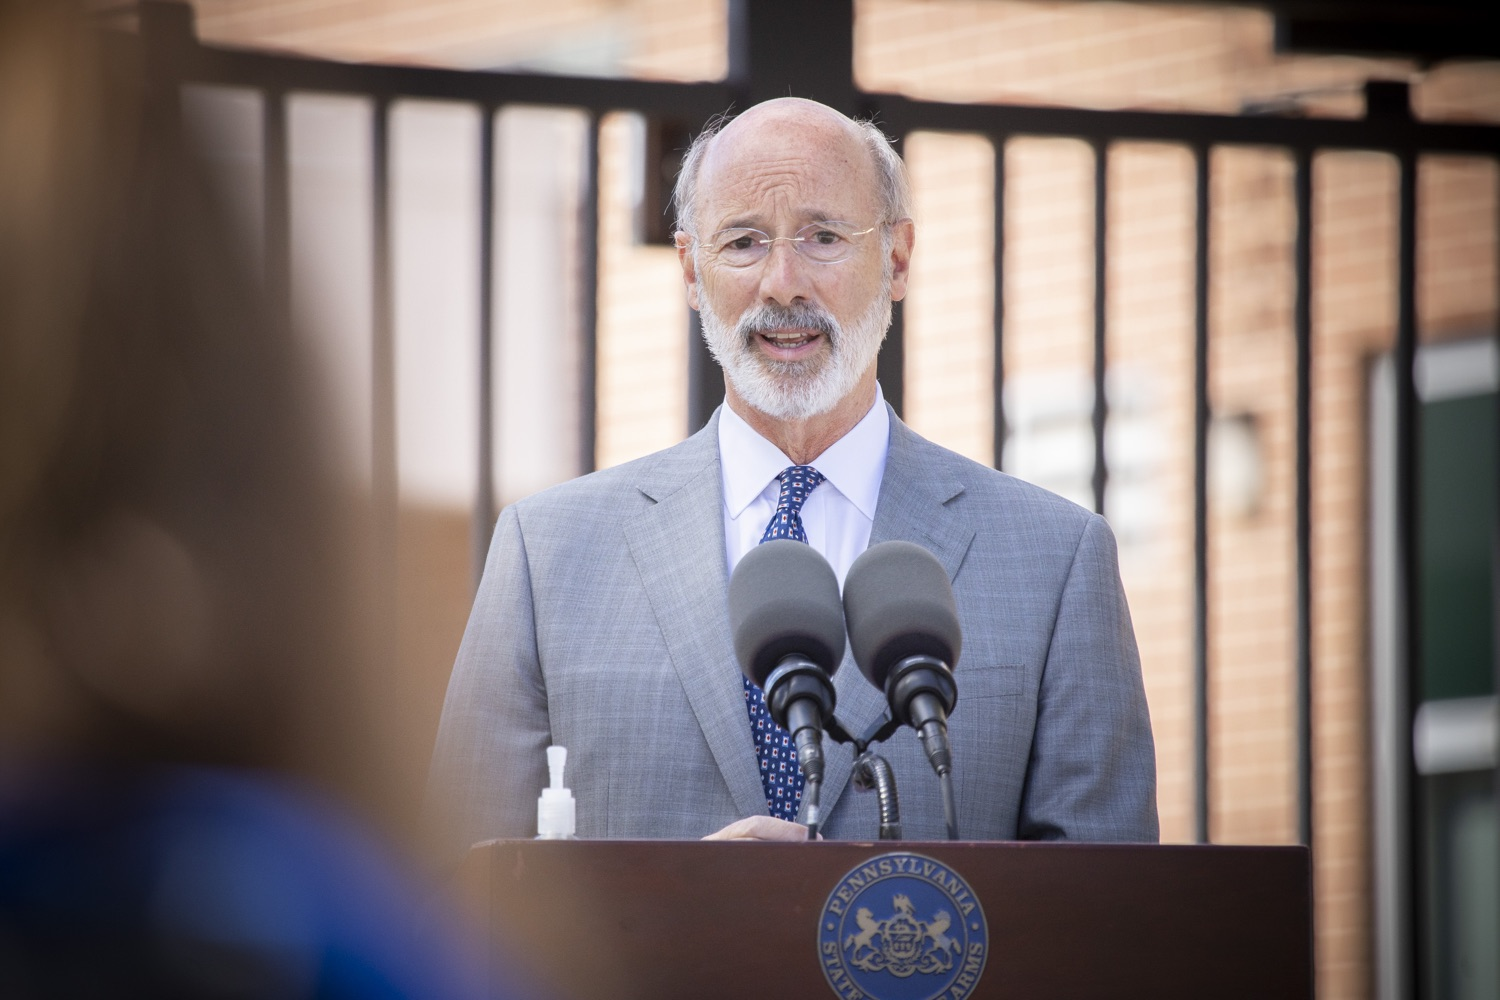 "<a href=""https://filesource.wostreaming.net/commonwealthofpa/photo/18306_gov_aca_dz_016.jpg"" target=""_blank"">⇣ Download Photo<br></a>Pennsylvania Governor Tom Wolf speaking with the press.  Governor Tom Wolf today amplified his call to protect the ACA and provide health care for all amid threats as the US Senate Judiciary Committee hearings to confirm conservative Judge Amy Coney Barrett to the Supreme Court begin next week and the pandemic ramps up across the country. York, PA  October 8, 2020"